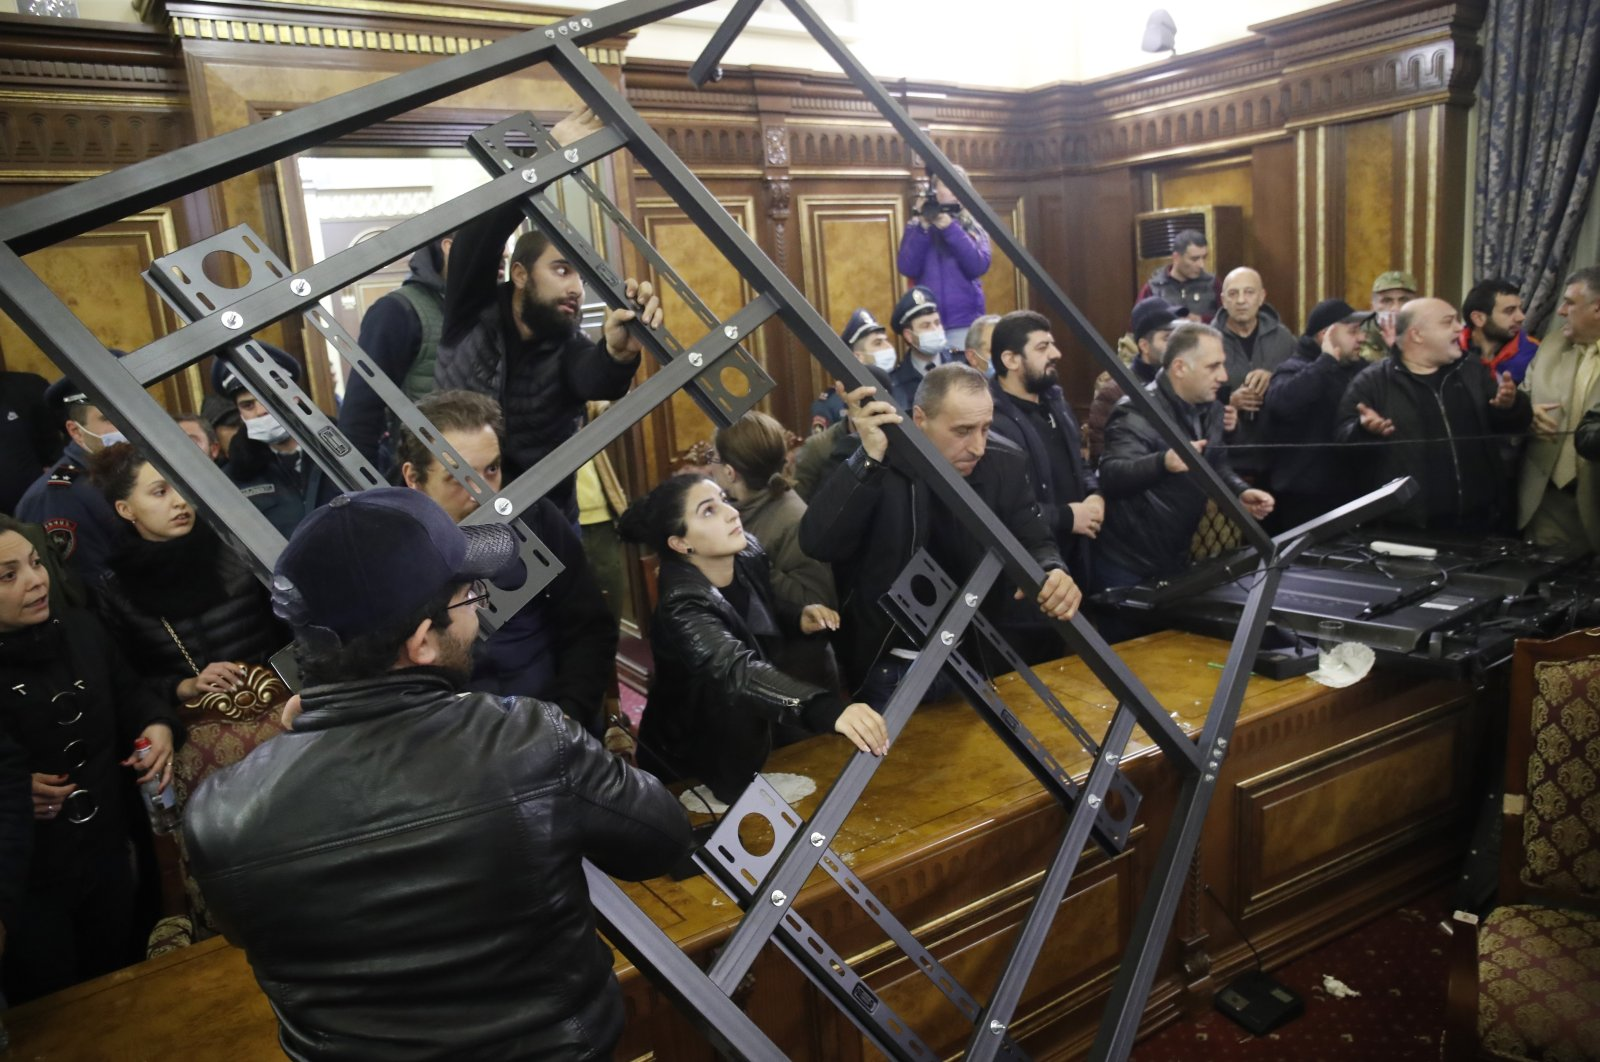 People broke into a government building protesting an agreement to halt fighting over the Nagorno-Karabakh region, in Yerevan, Armenia, Nov. 10, 2020. (AP Photo)